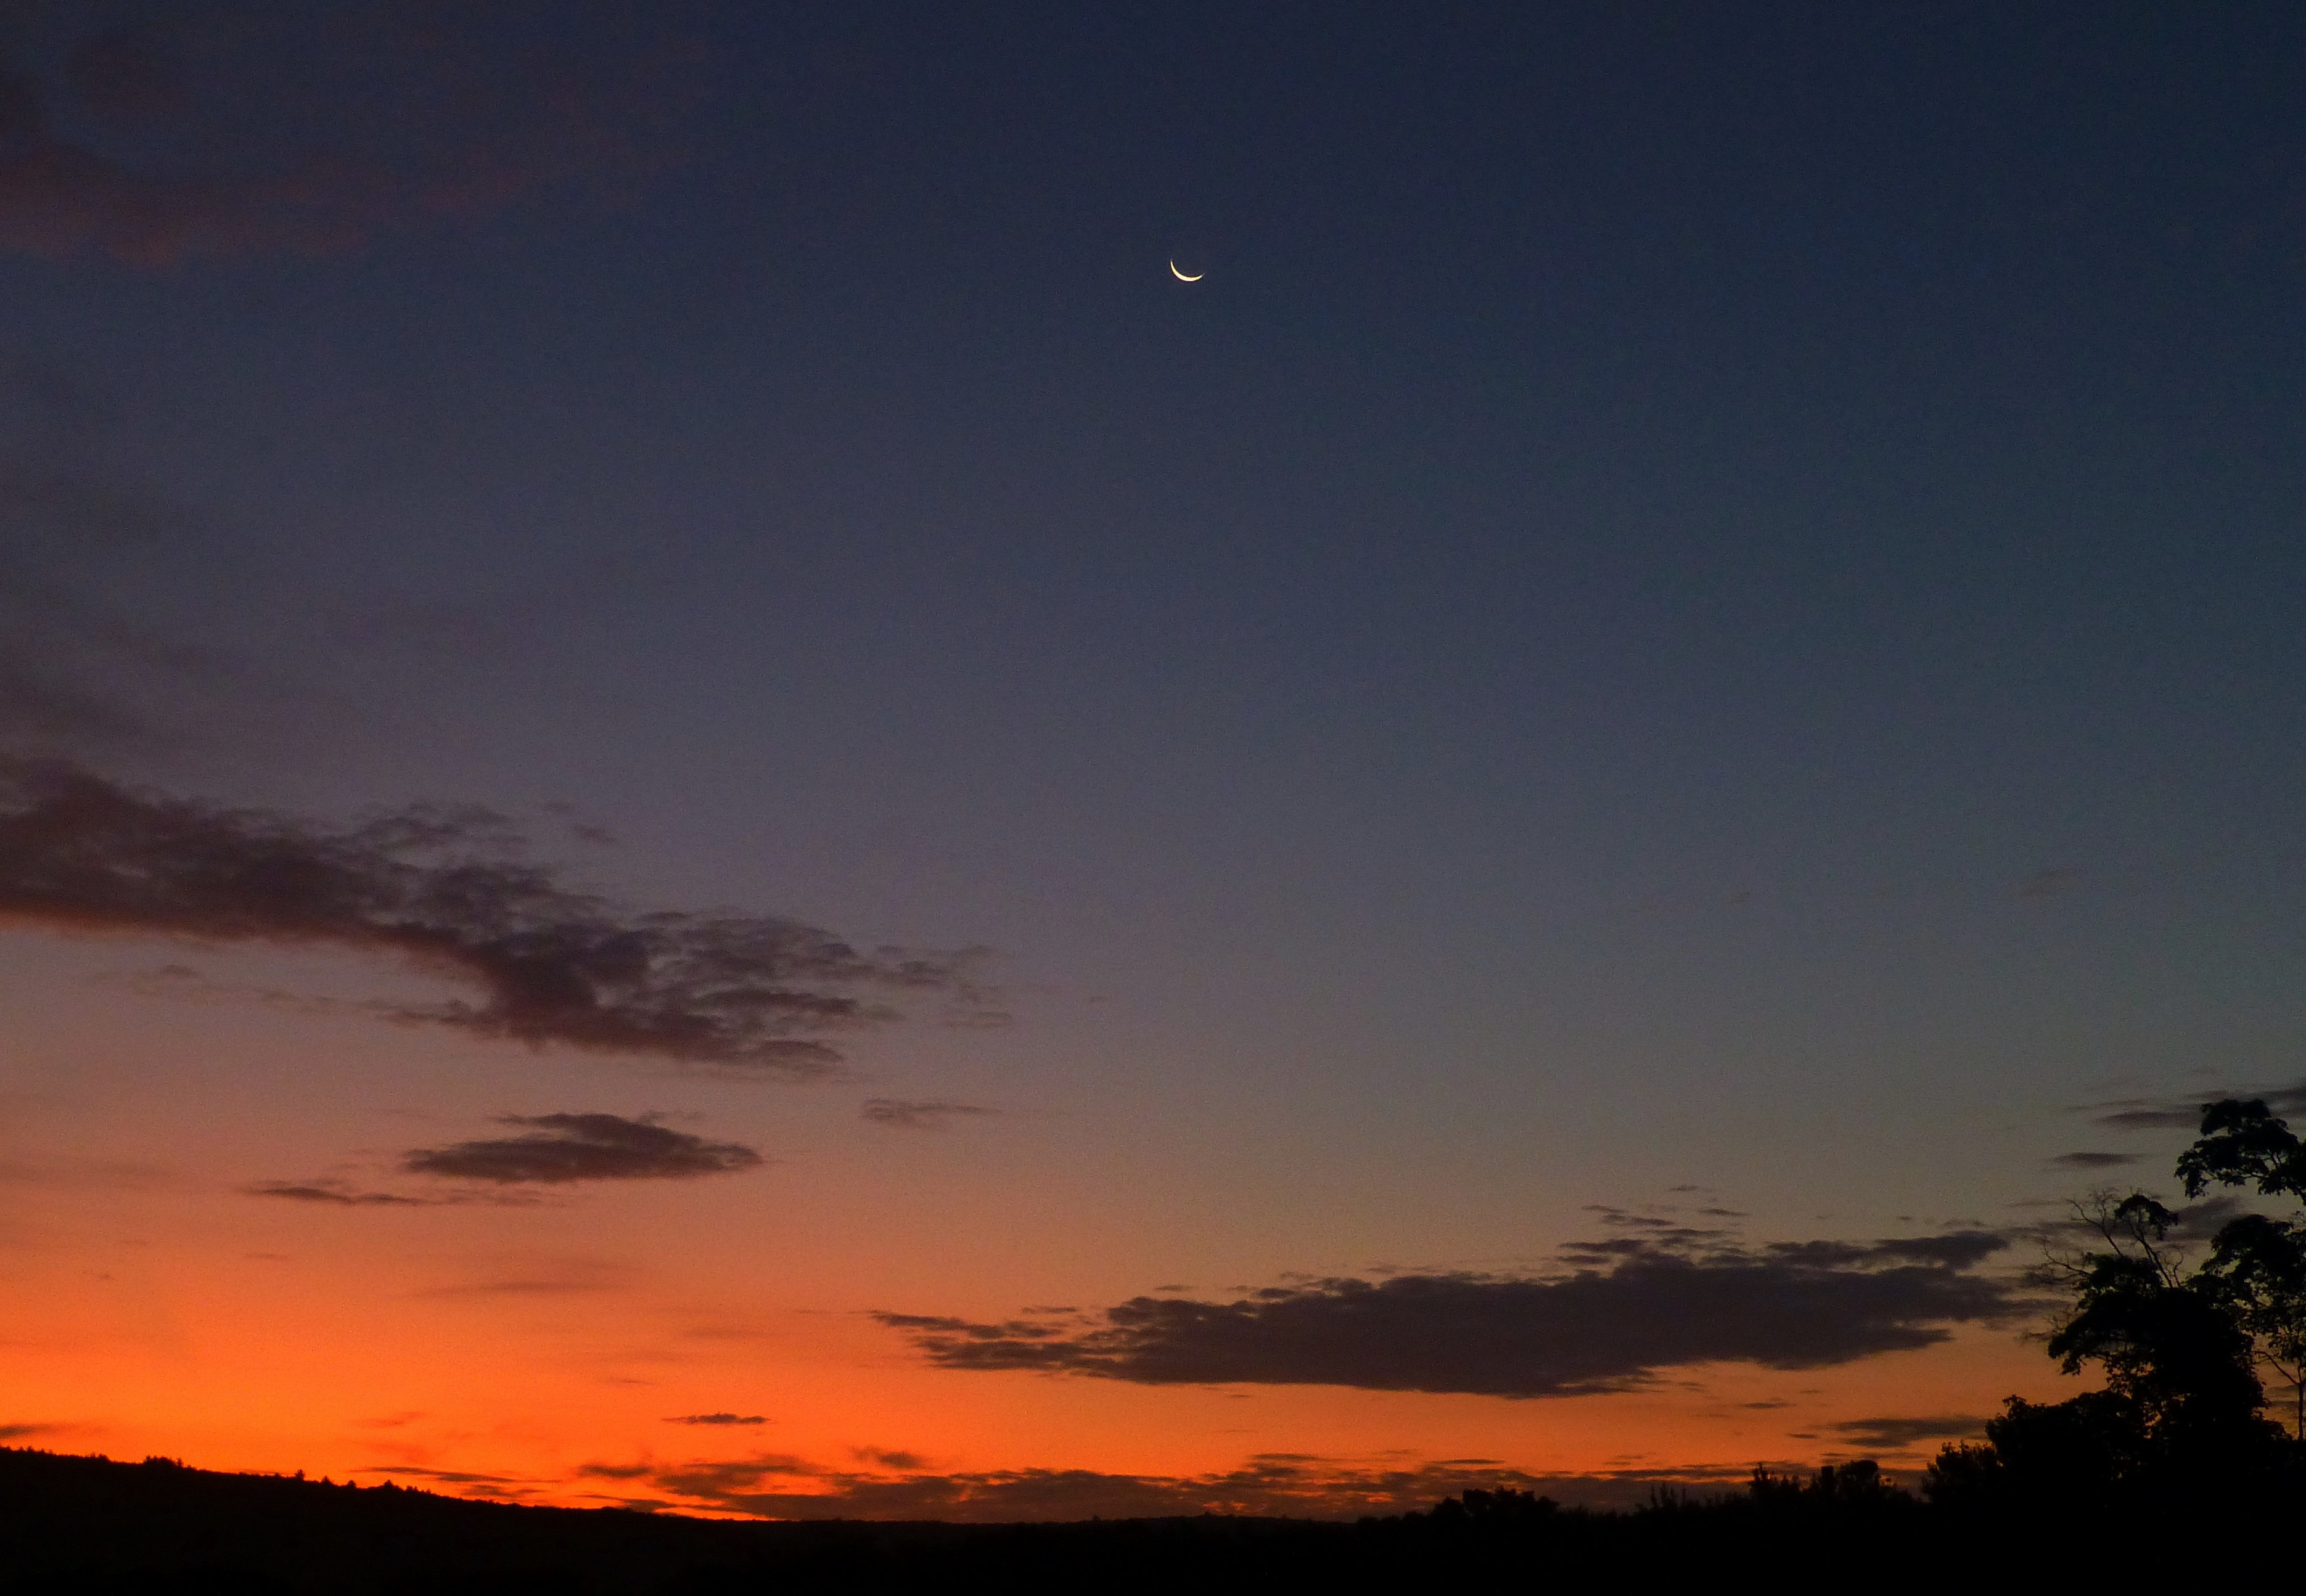 August dawn with a crescent moon